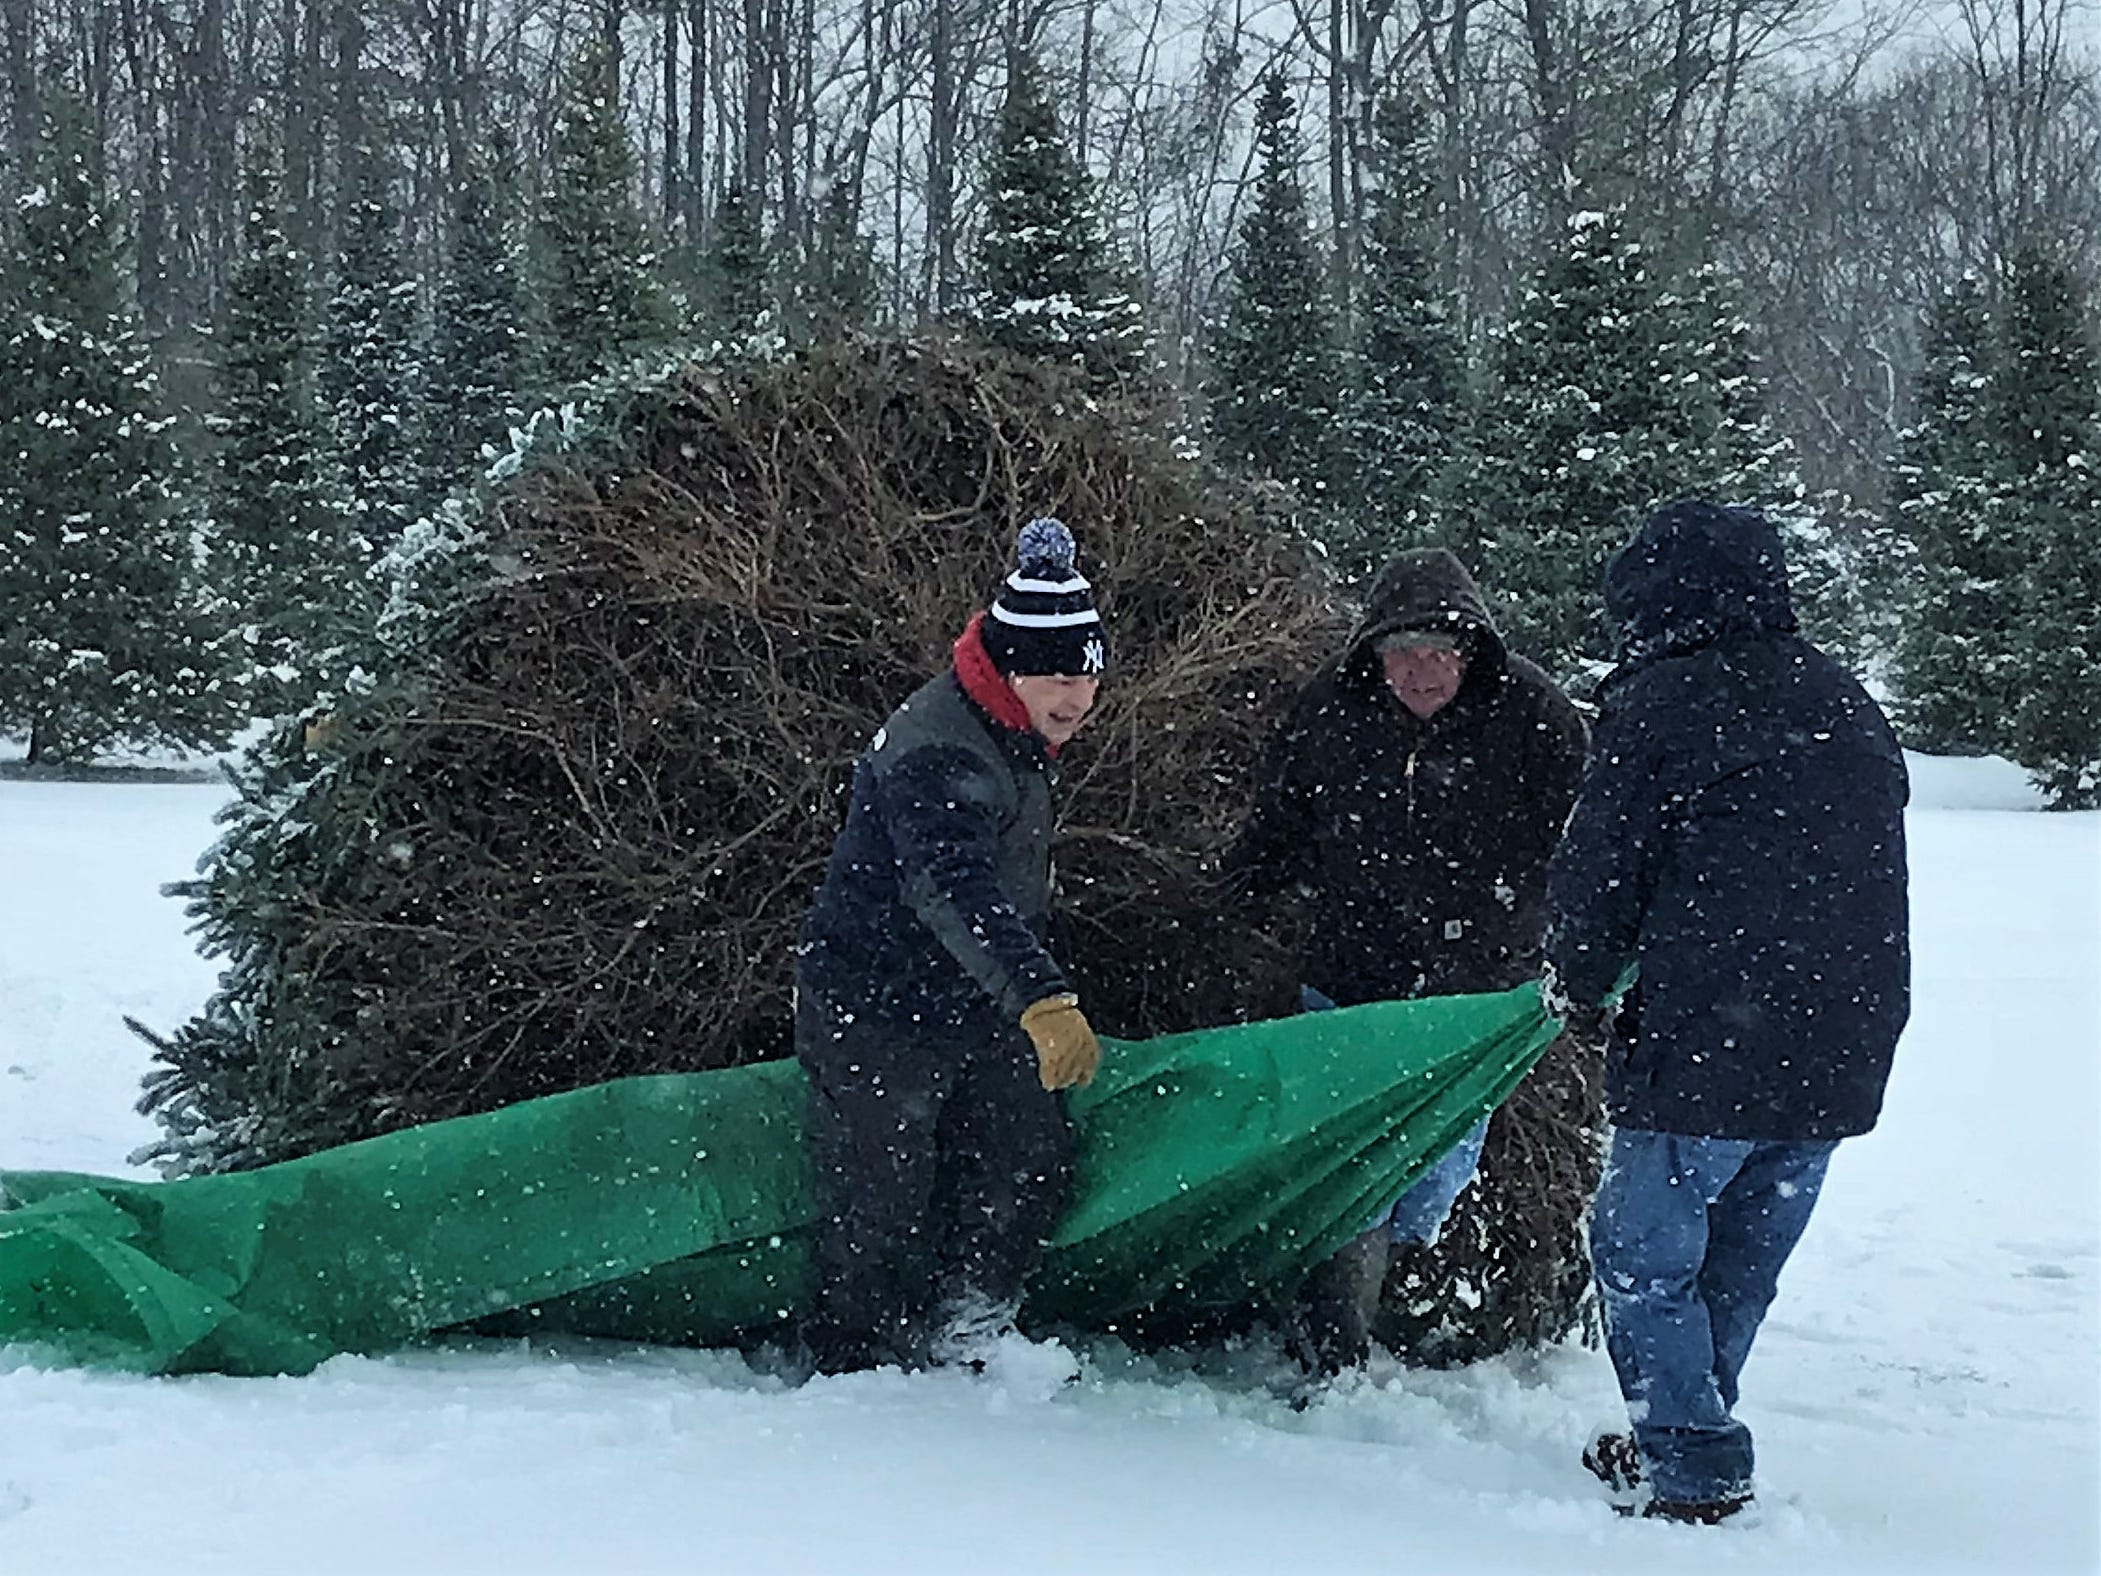 Arctic League volunteers drag a Norway spruce donated by Steve Matkosky of Catlin to a waiting tow truck.